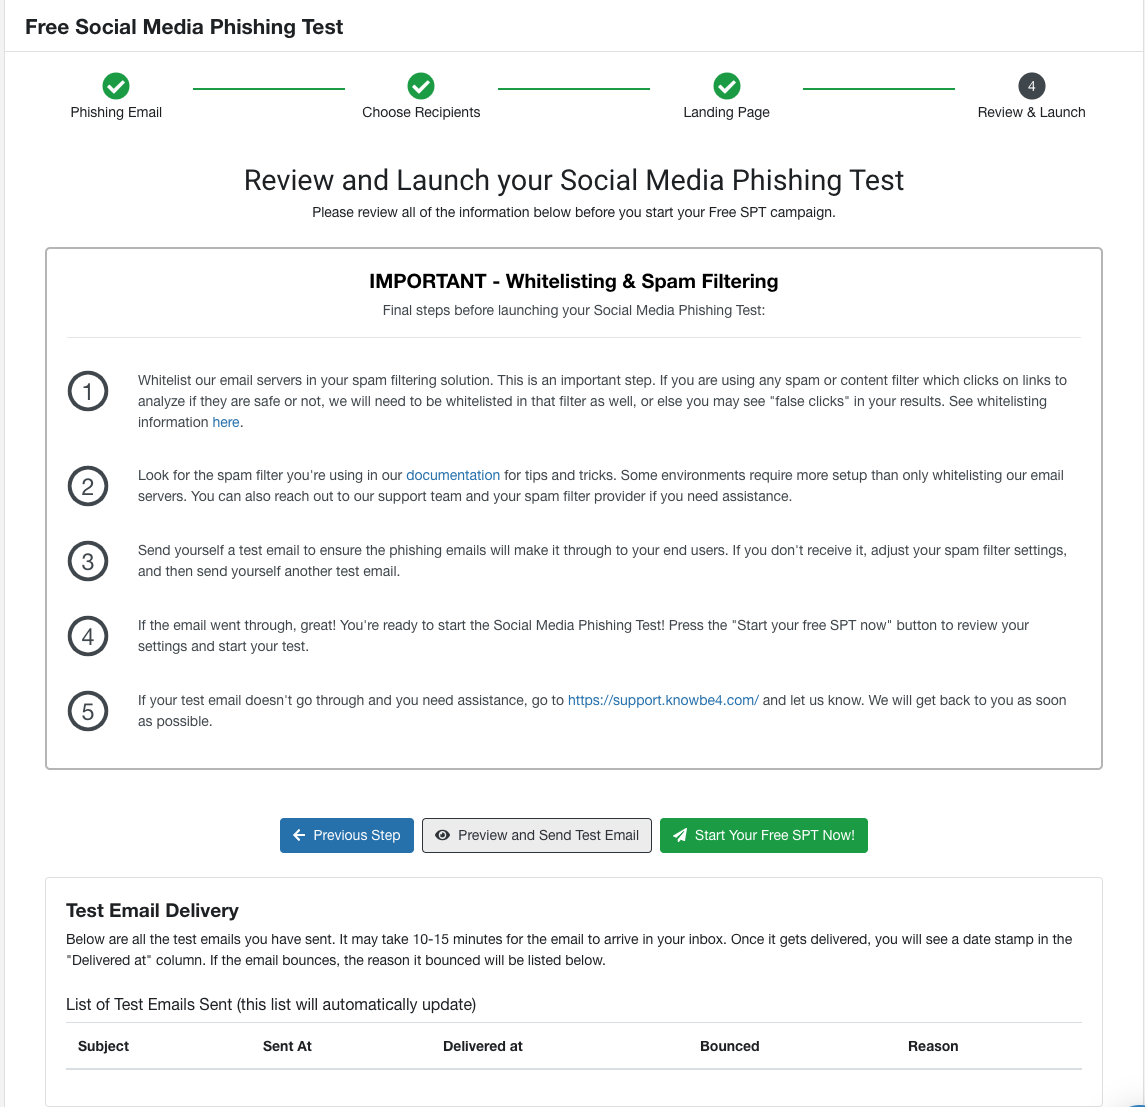 Free Social Media Phishing Test (SPT) Quickstart Guide